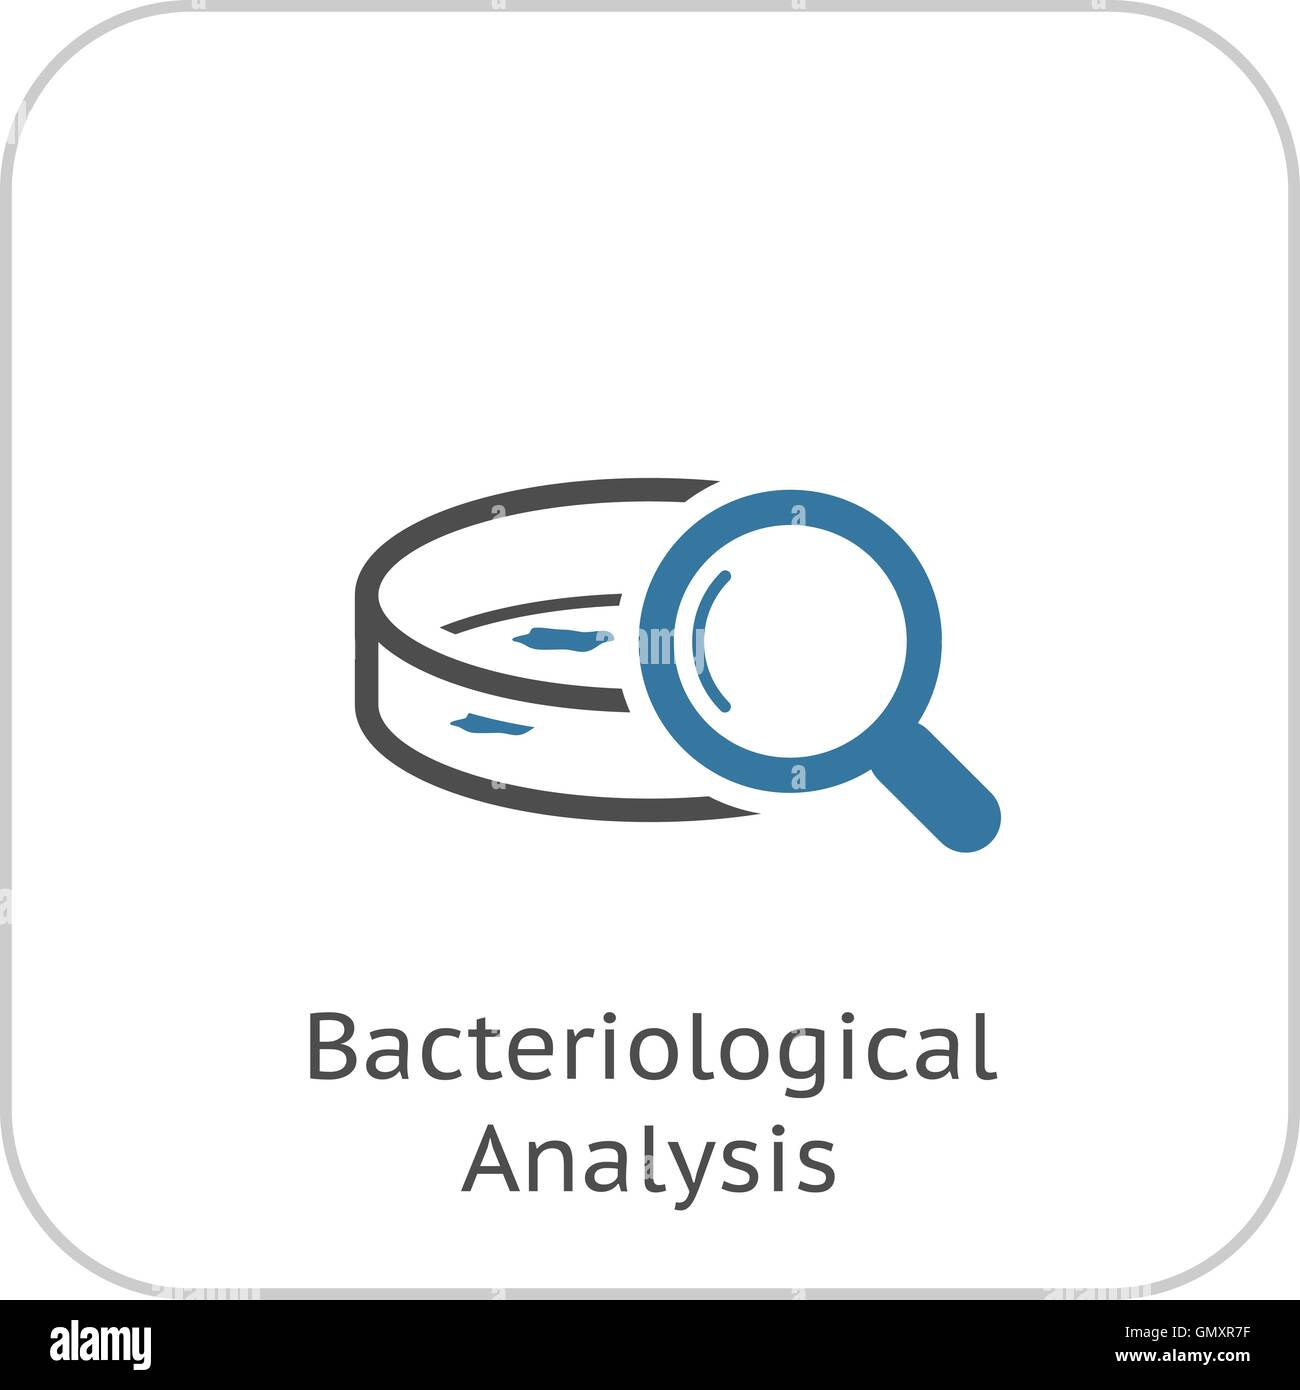 Bacteriological Analysis Icon. Flat Design. - Stock Image